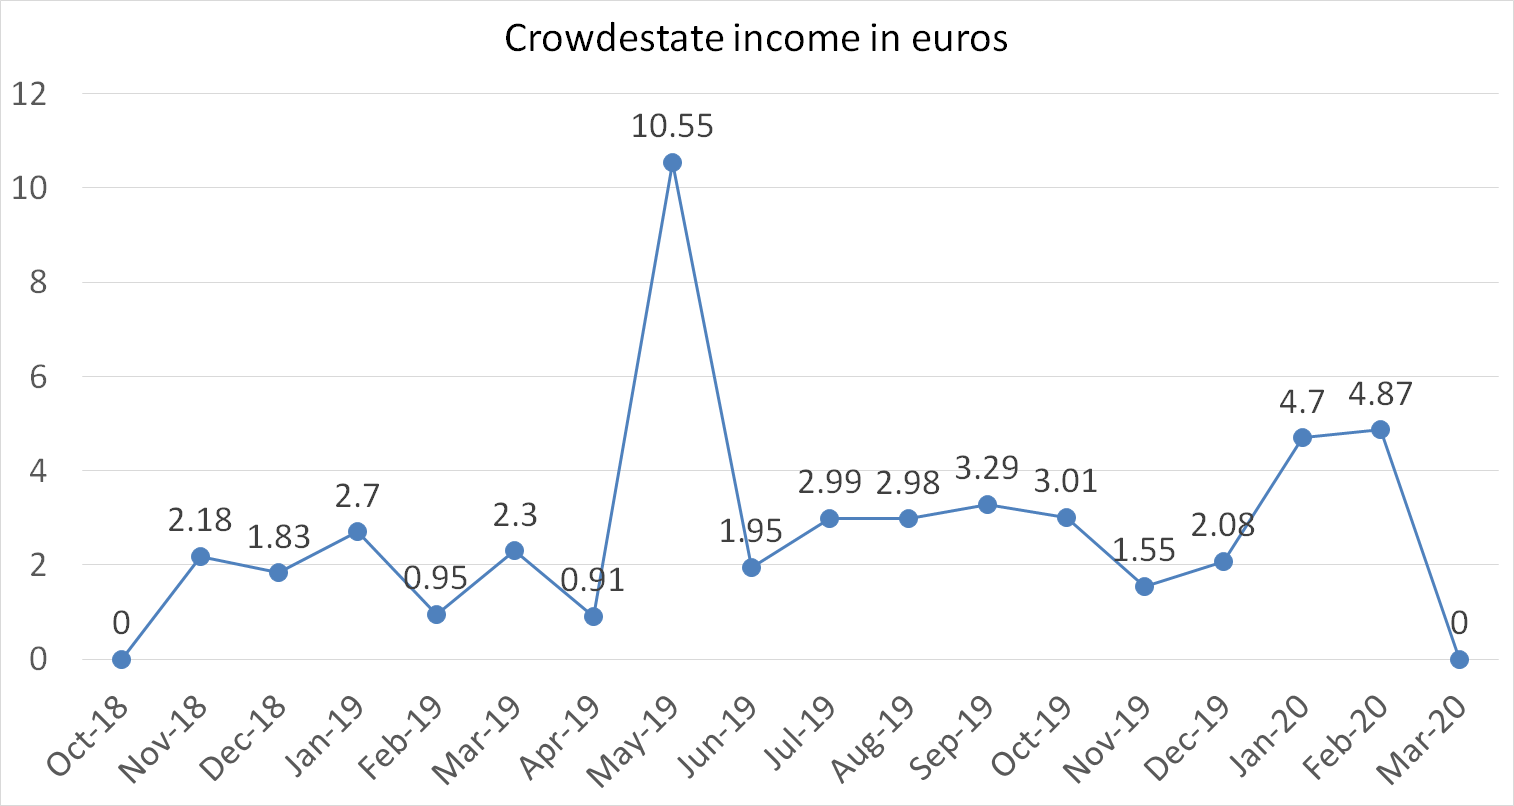 Crowdestate income in euros in march 2020